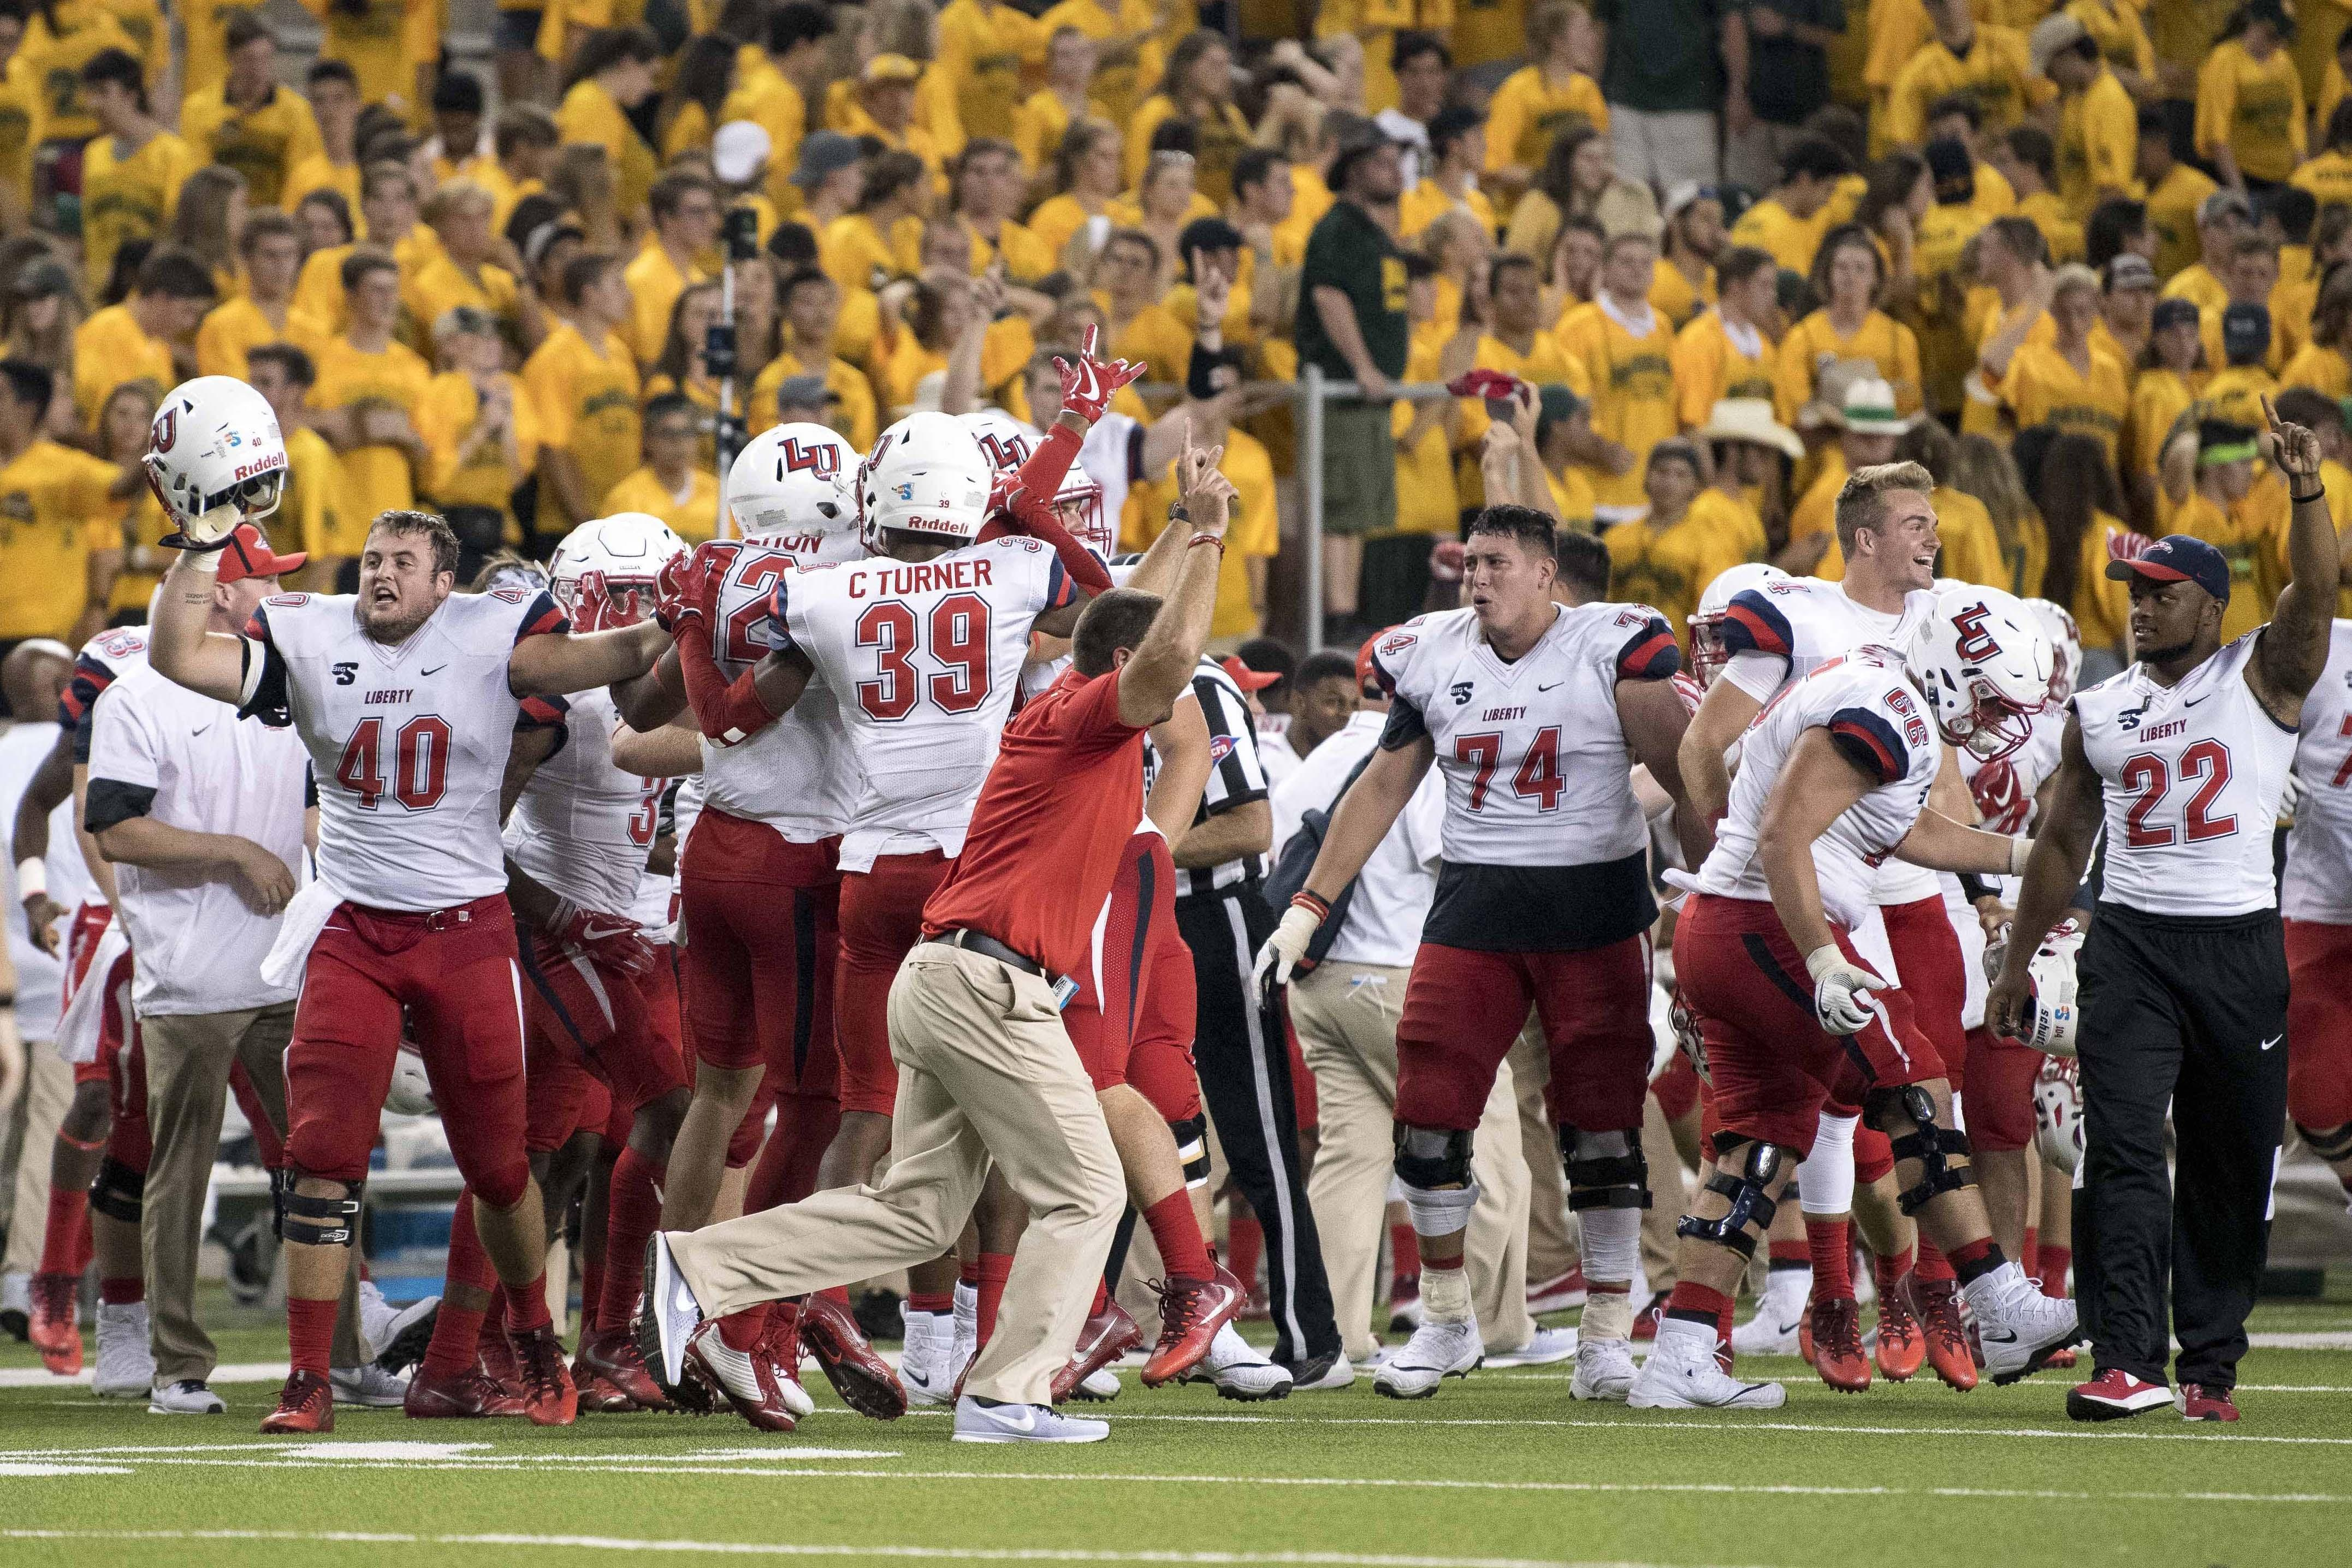 Fcs Football 11 Things To Know About Liberty Which Just